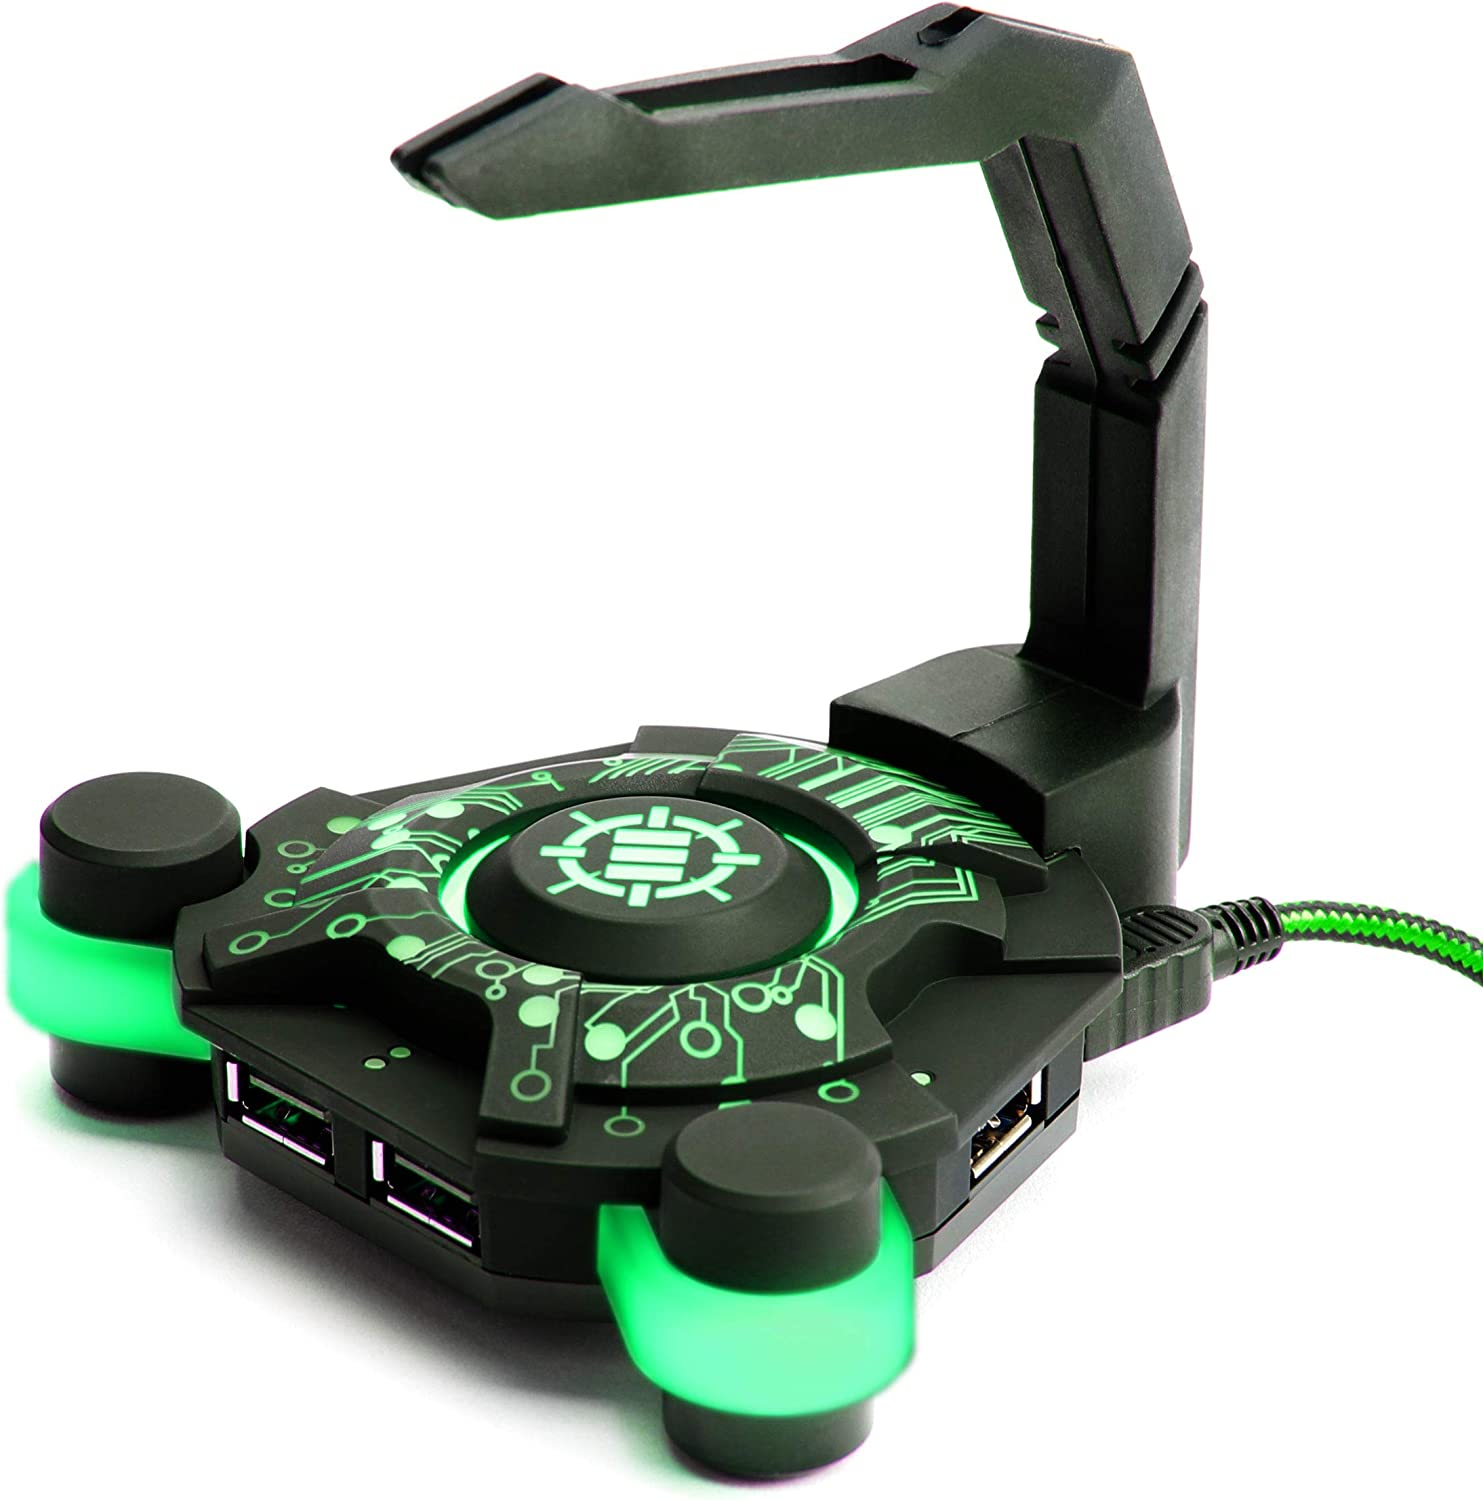 ENHANCE LED Gaming Mouse Bungee Cord Holder with 4-Port USB Hub - Green Lighting - Cable Management & Increased Accuracy for Pro eSports & Competitive Games